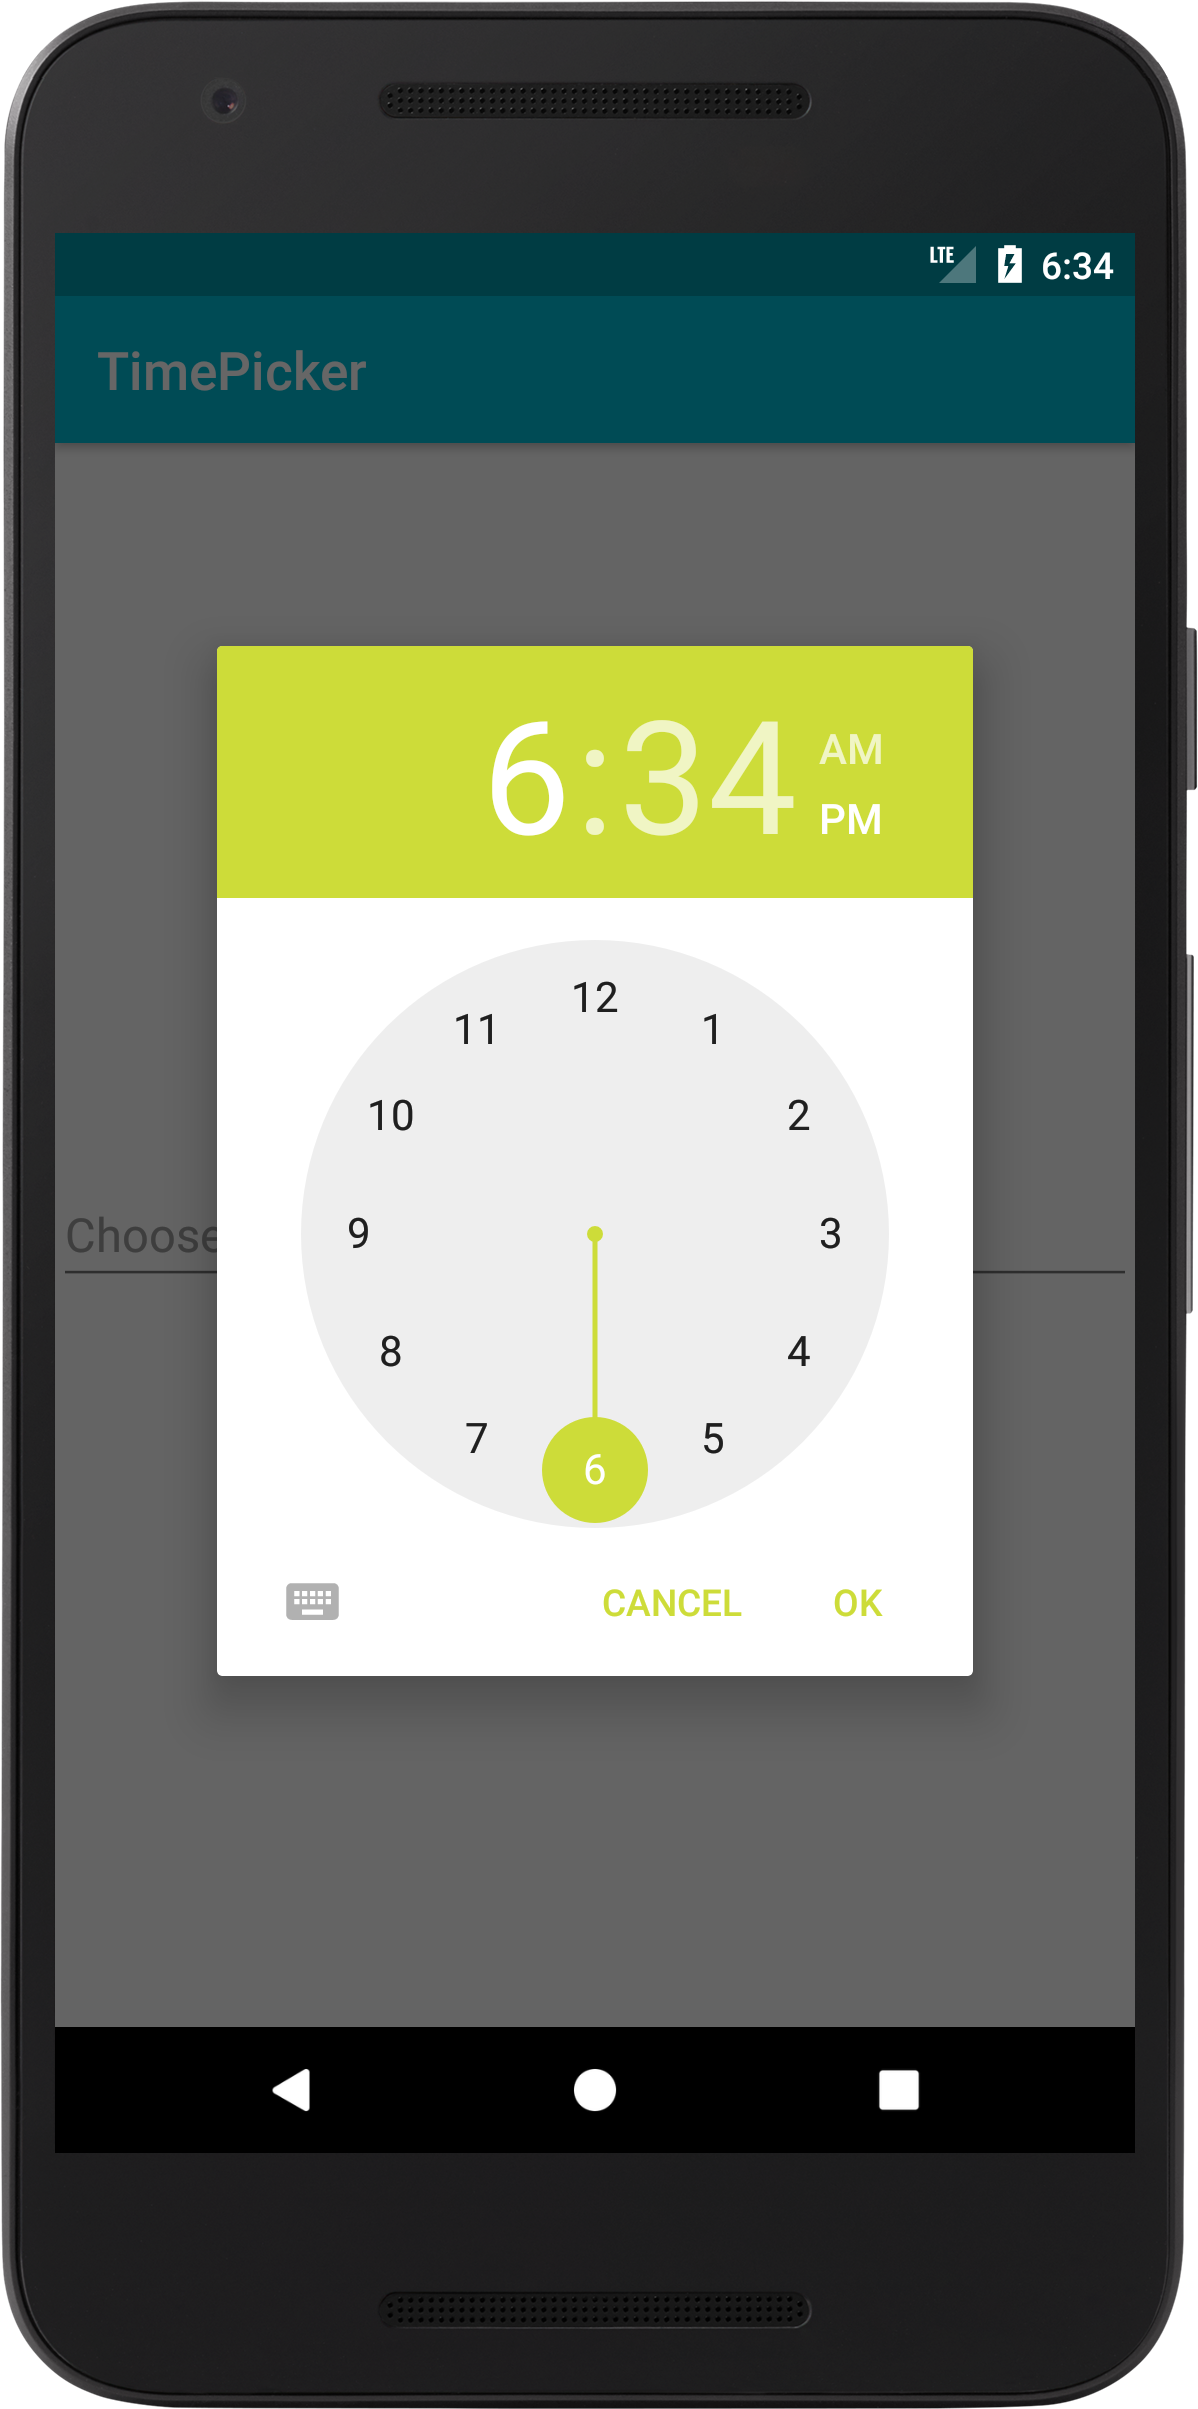 Android Timepicker - Use EditText to Show TimePickerDialog